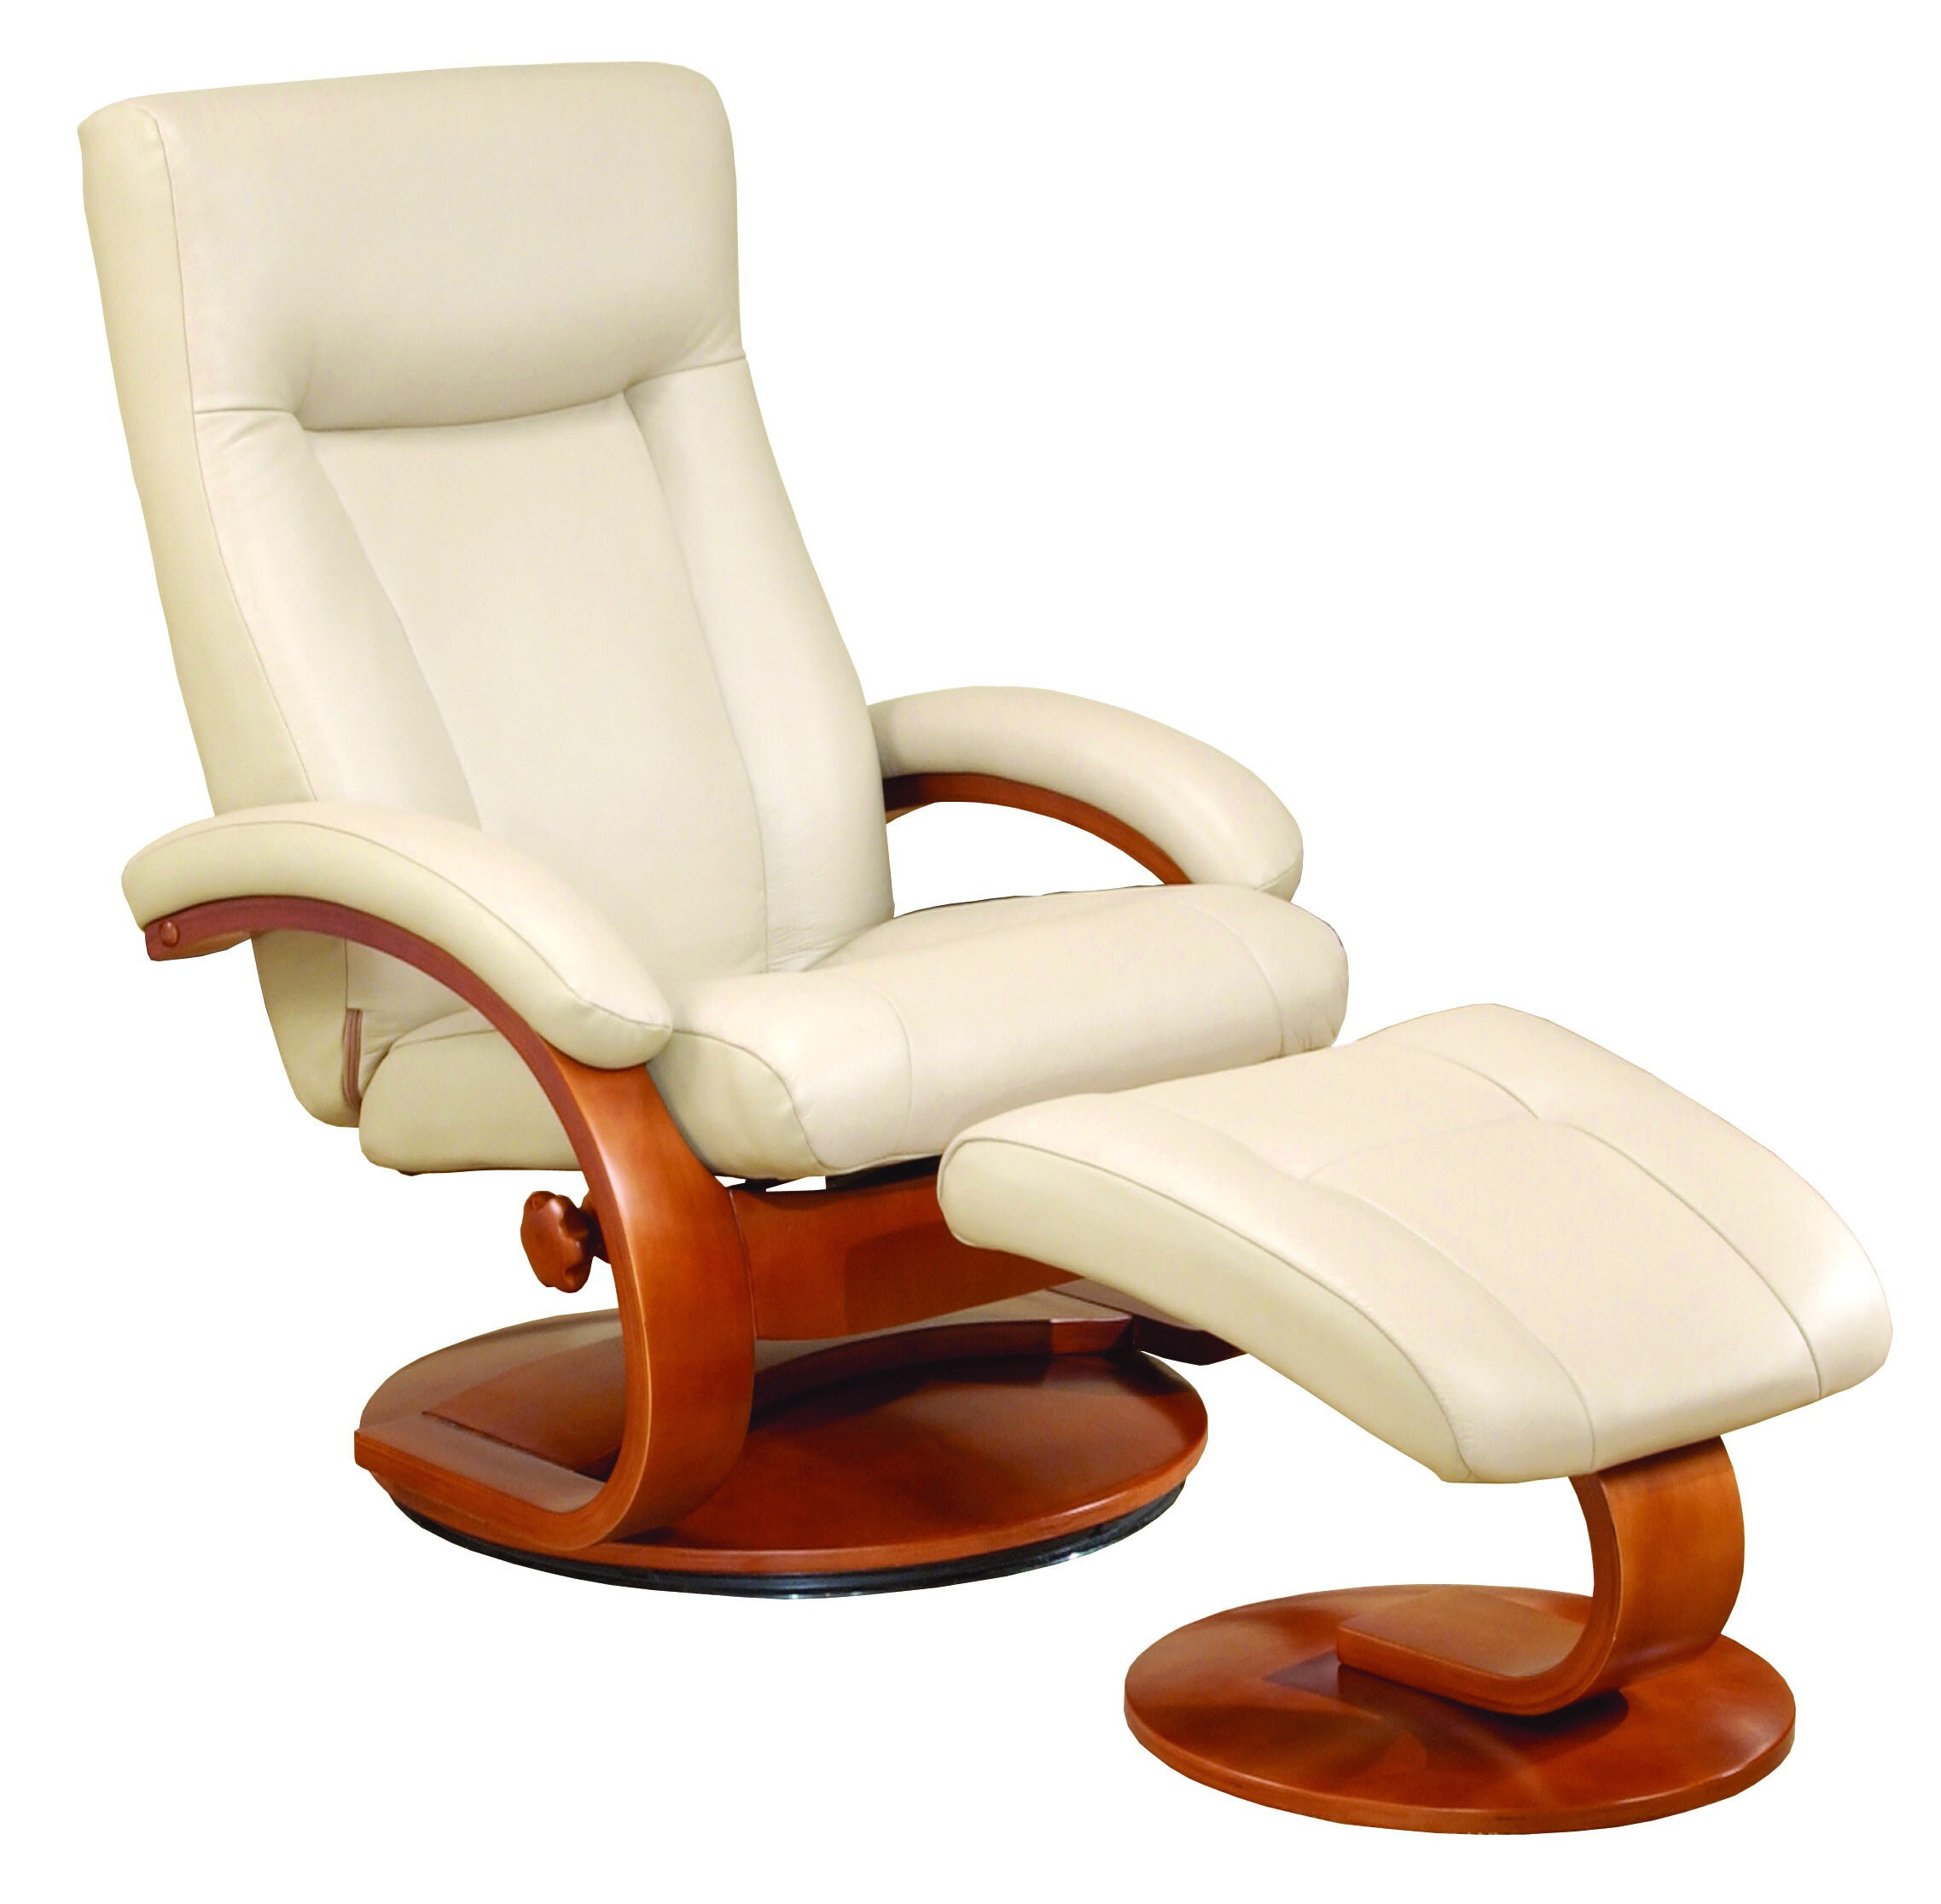 Mac motion oslo 54 series leather recliner and ottoman set